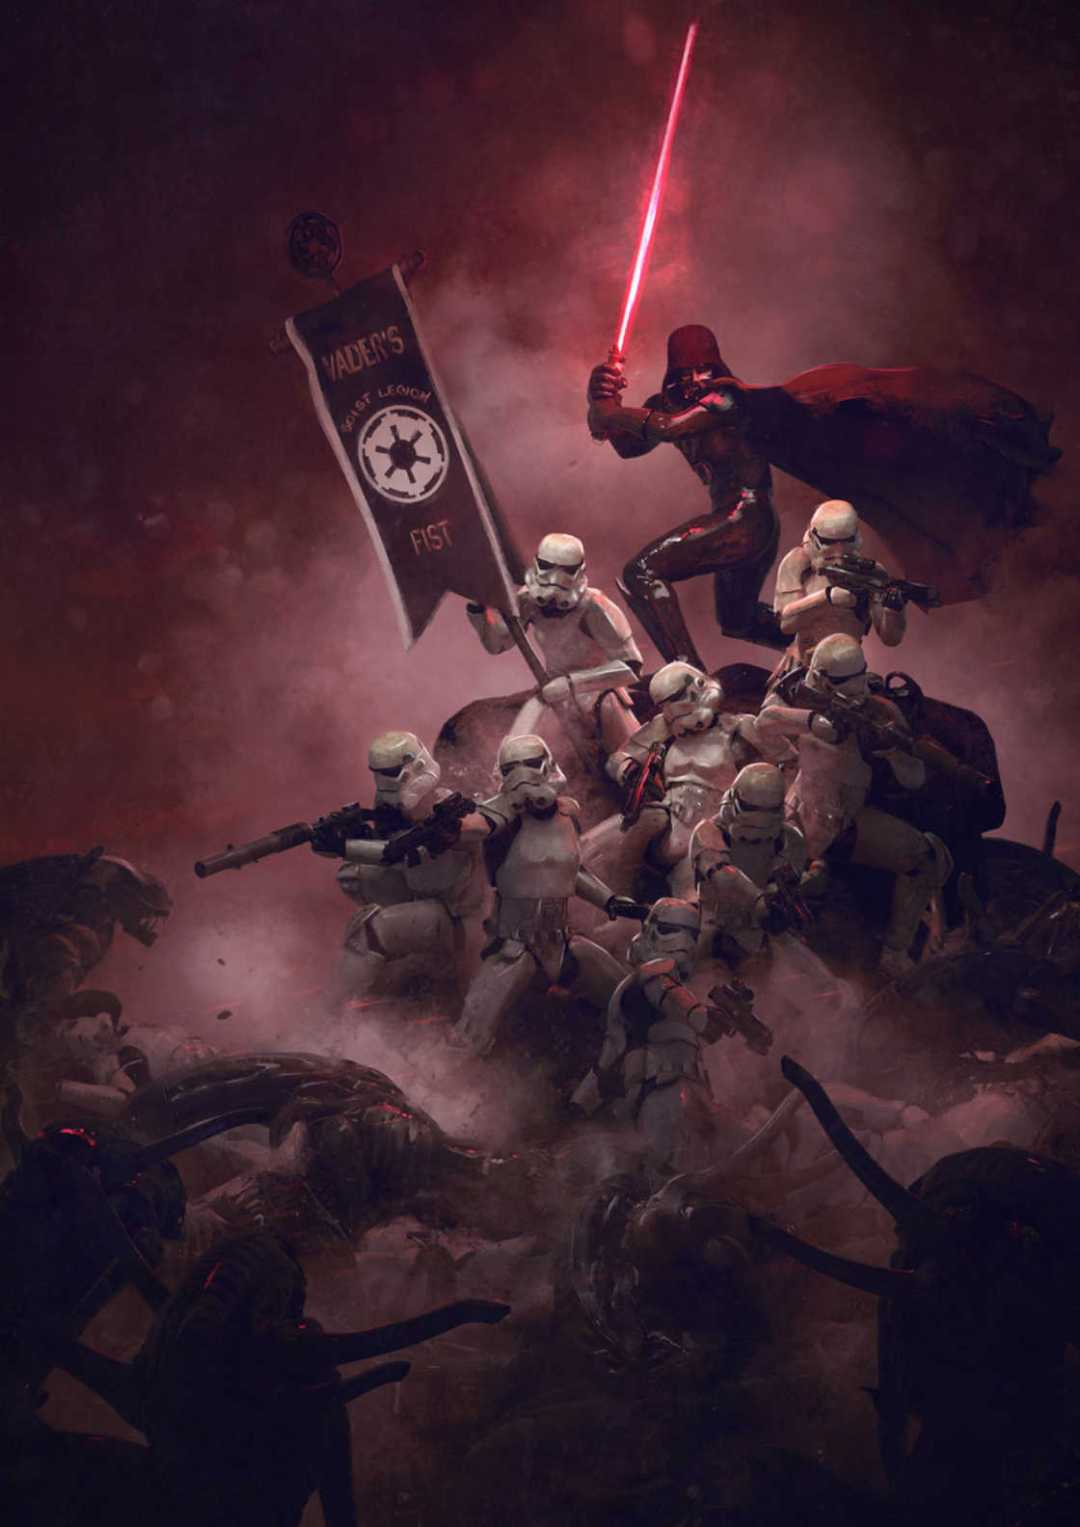 Guillem-H-Pongiluppi-star-wars-vs-aliens-3.jpg